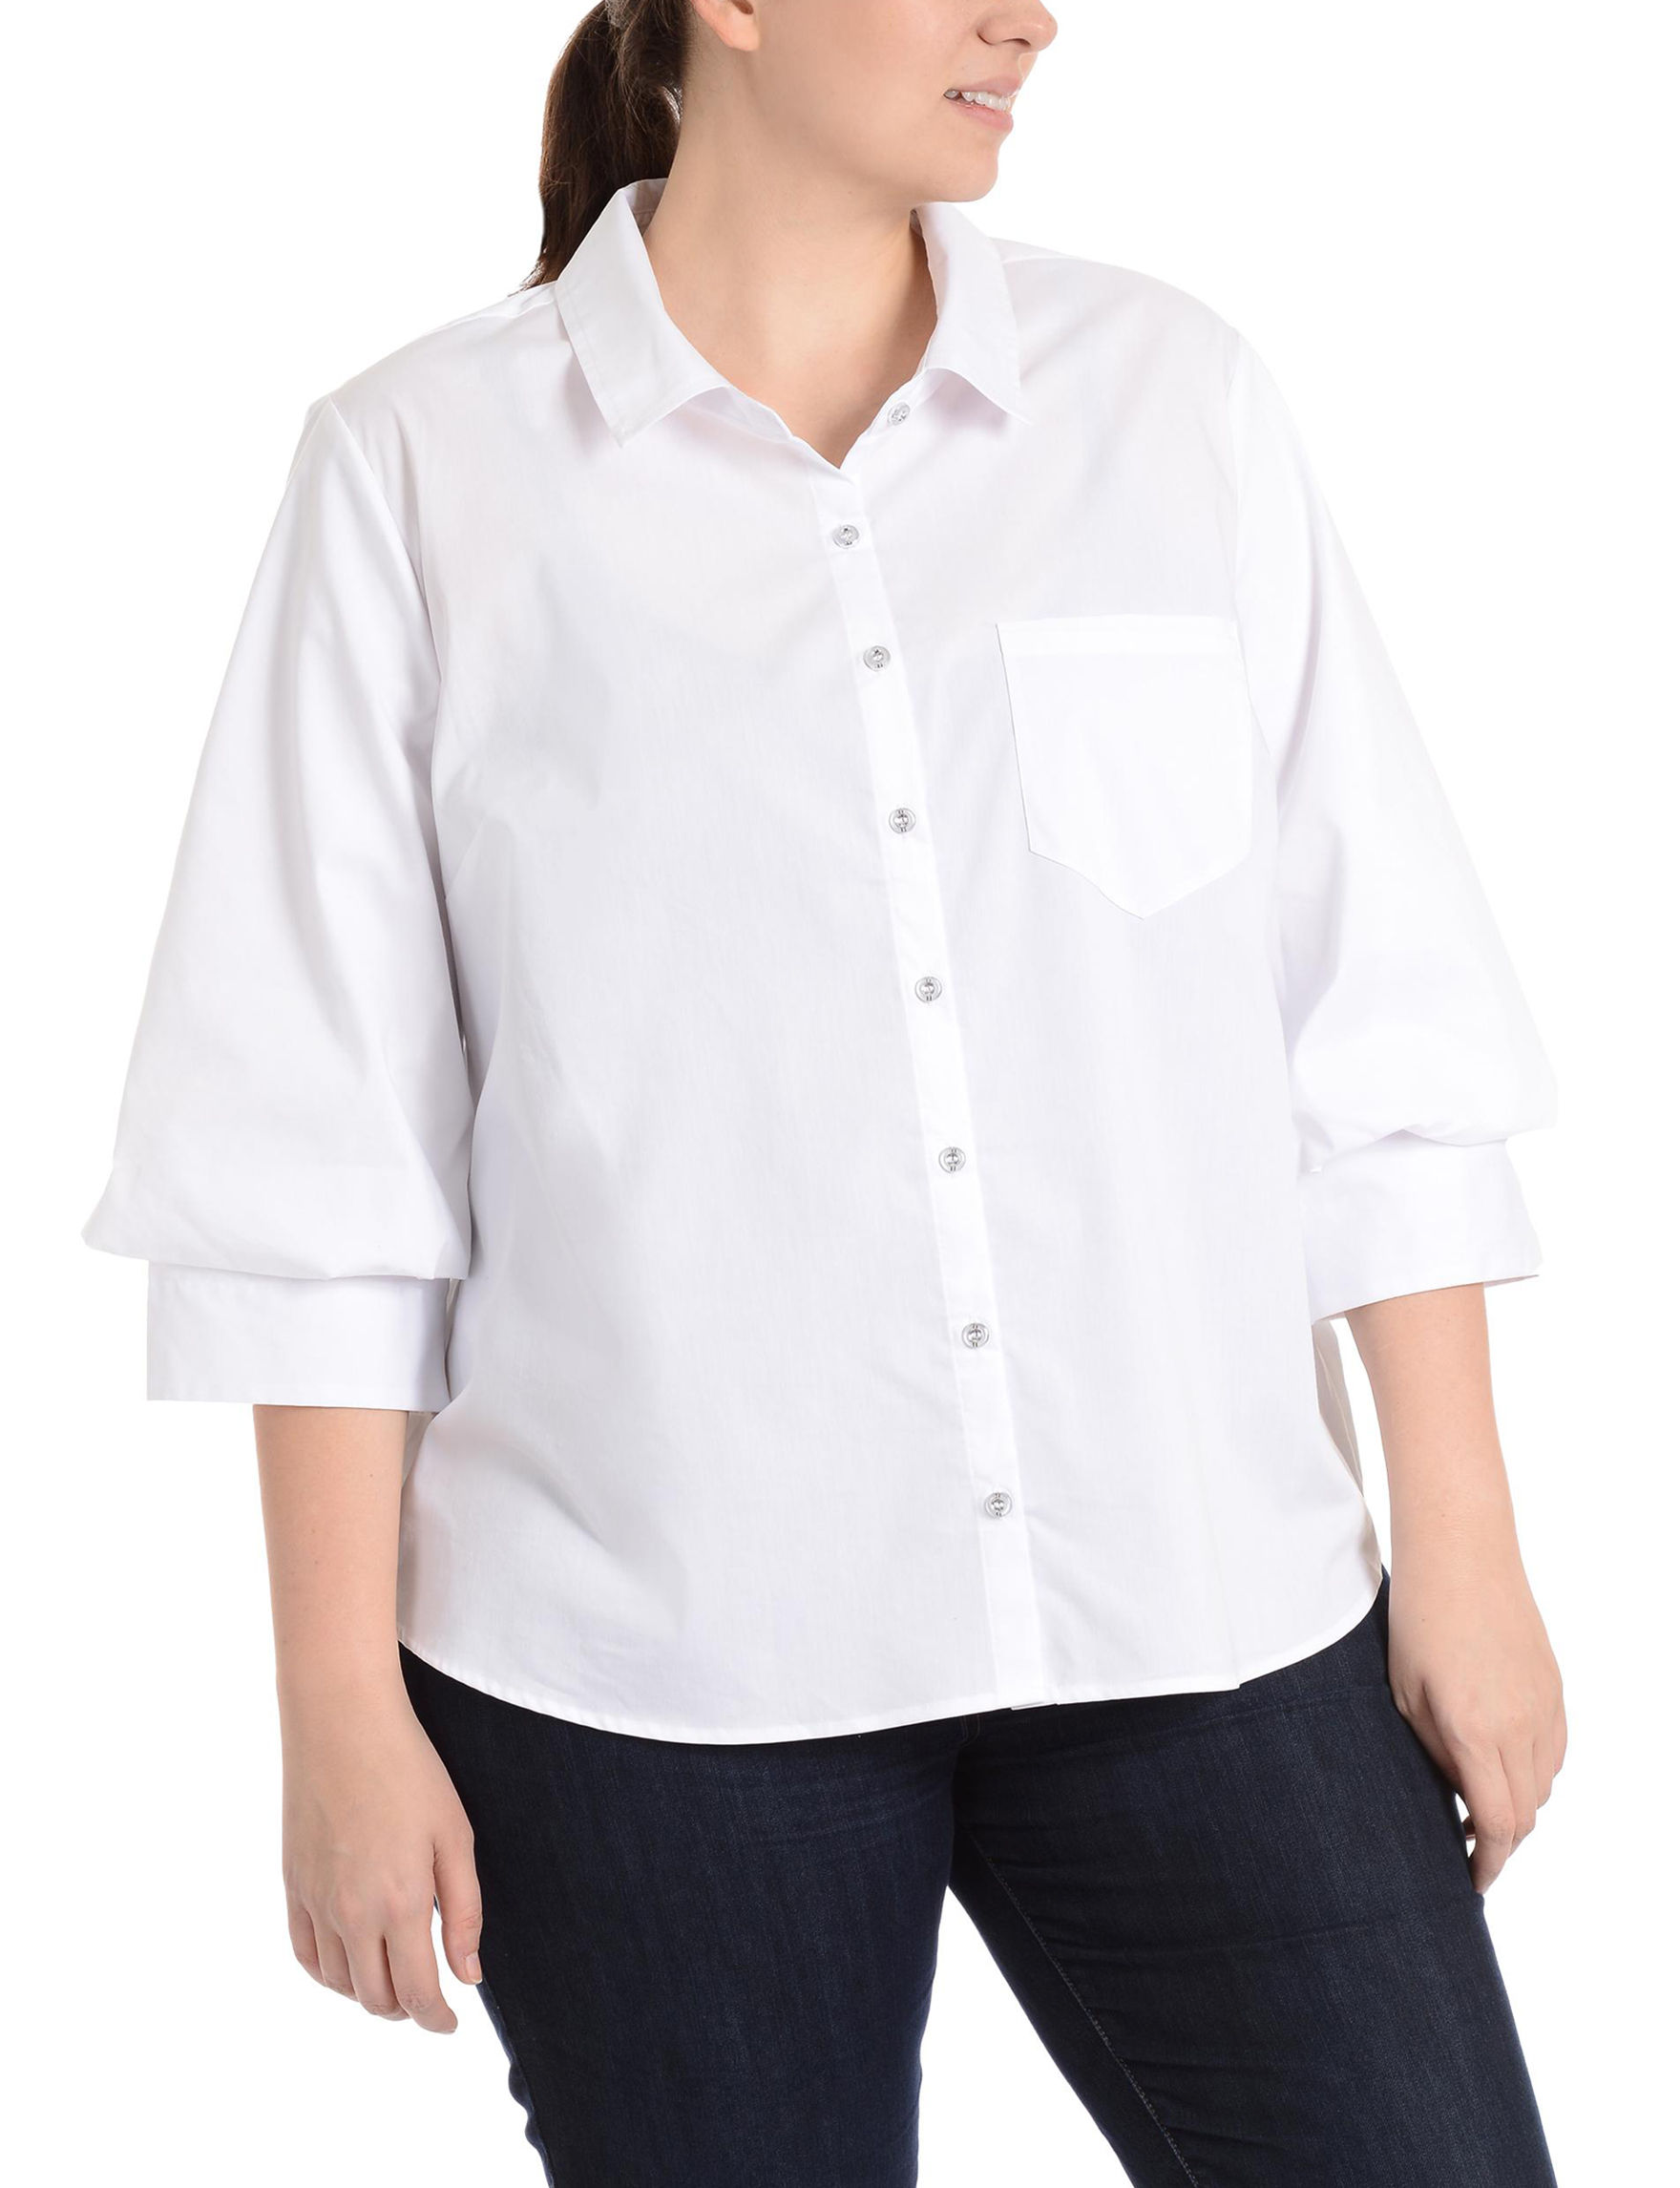 NY Collection White Shirts & Blouses